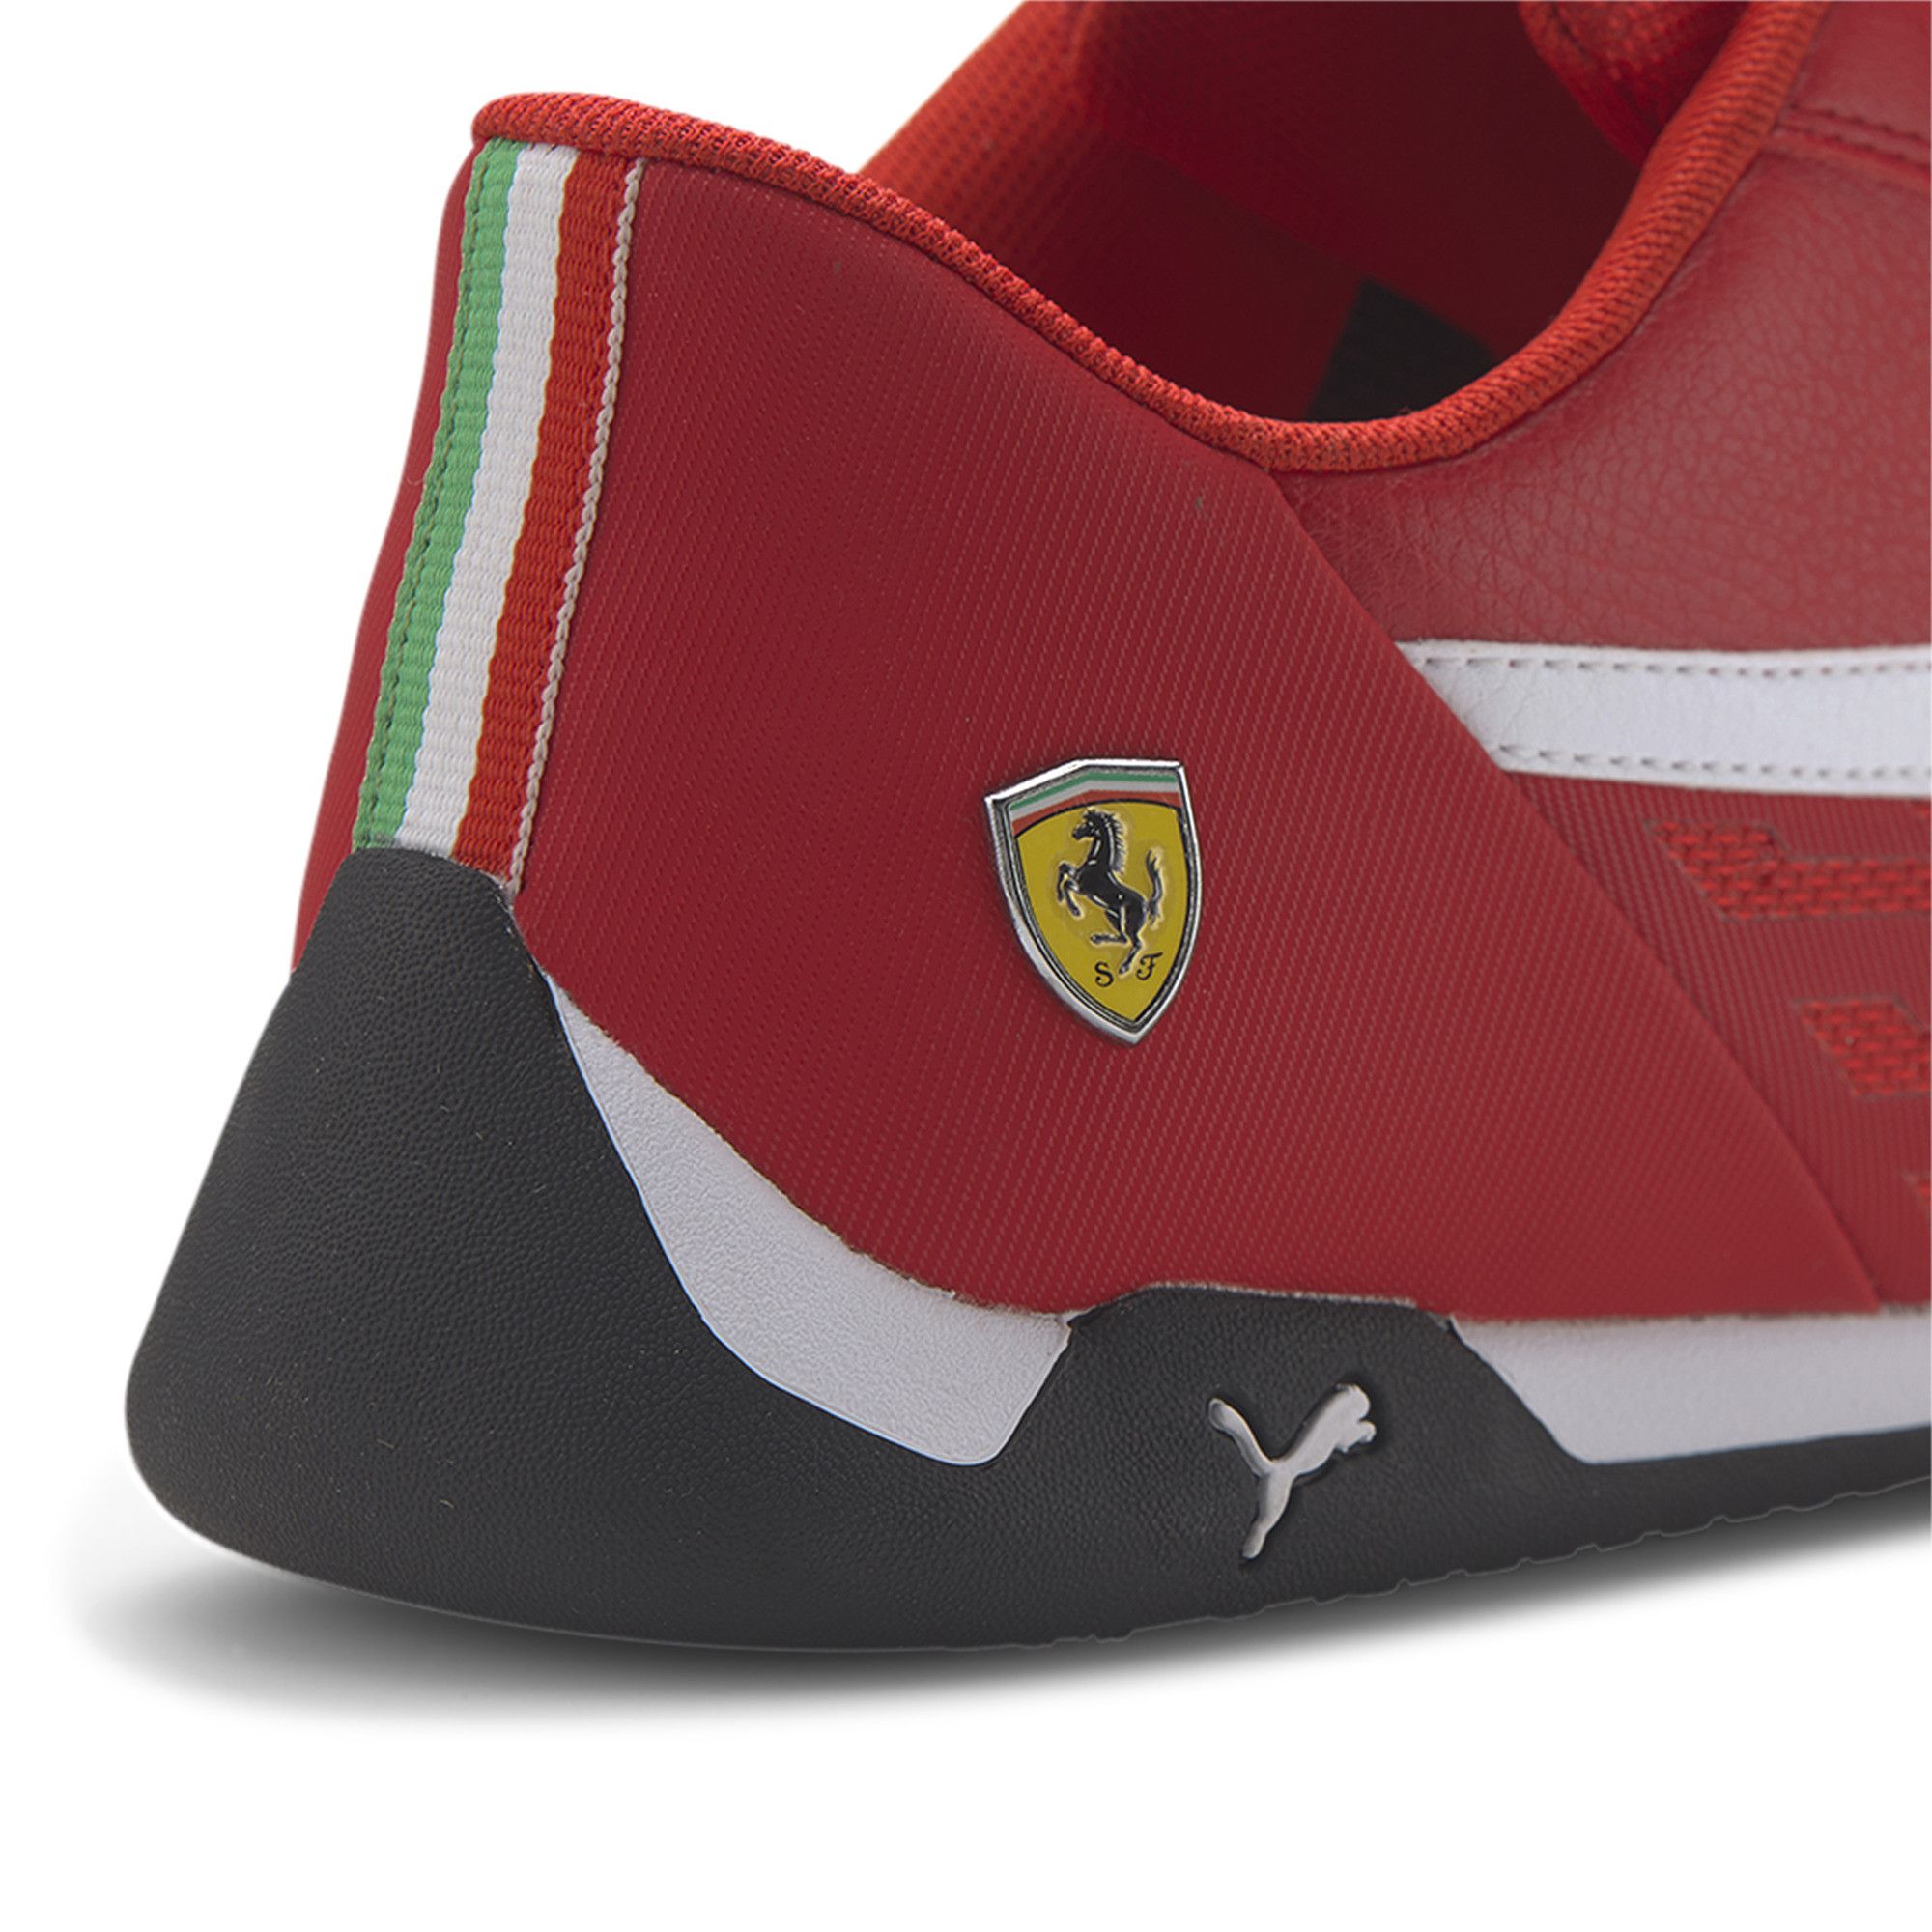 PUMA-Men-039-s-Scuderia-Ferrari-R-Cat-Motorsport-Shoes thumbnail 9